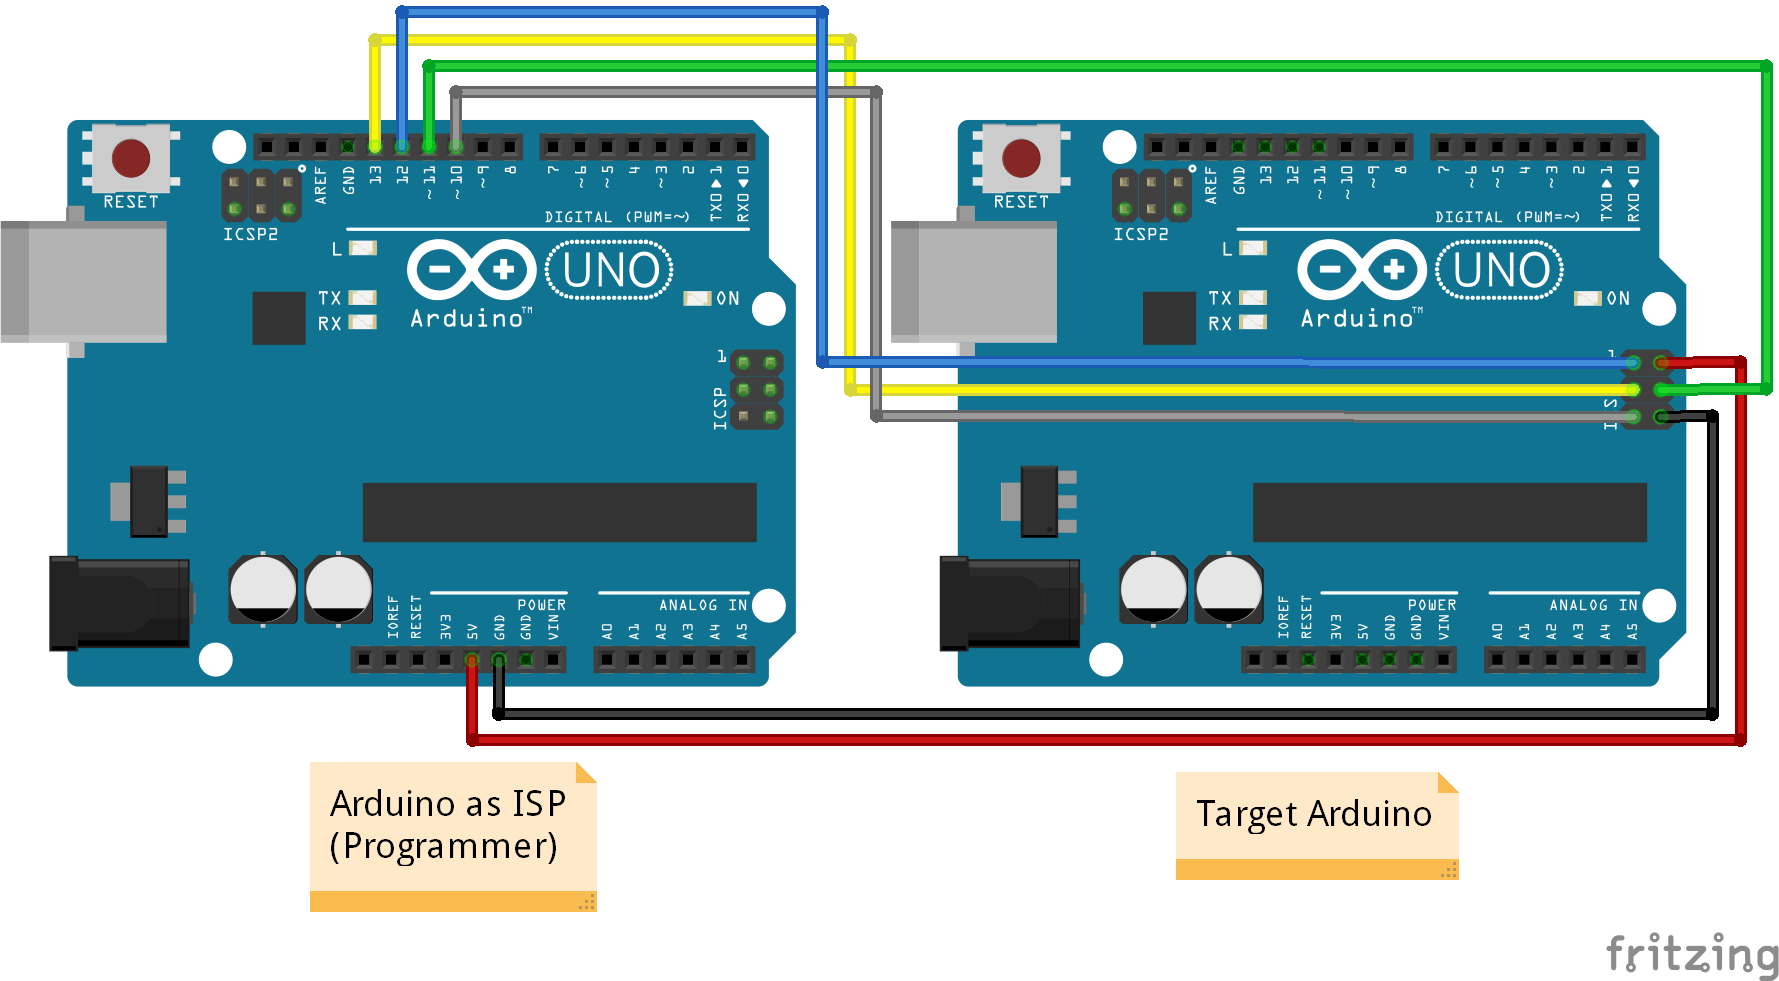 Installing An Arduino Bootloader Attiny2313 Based Lan Cable Tester Schematic Fritzing Diagram Of As Isp Connected To Target